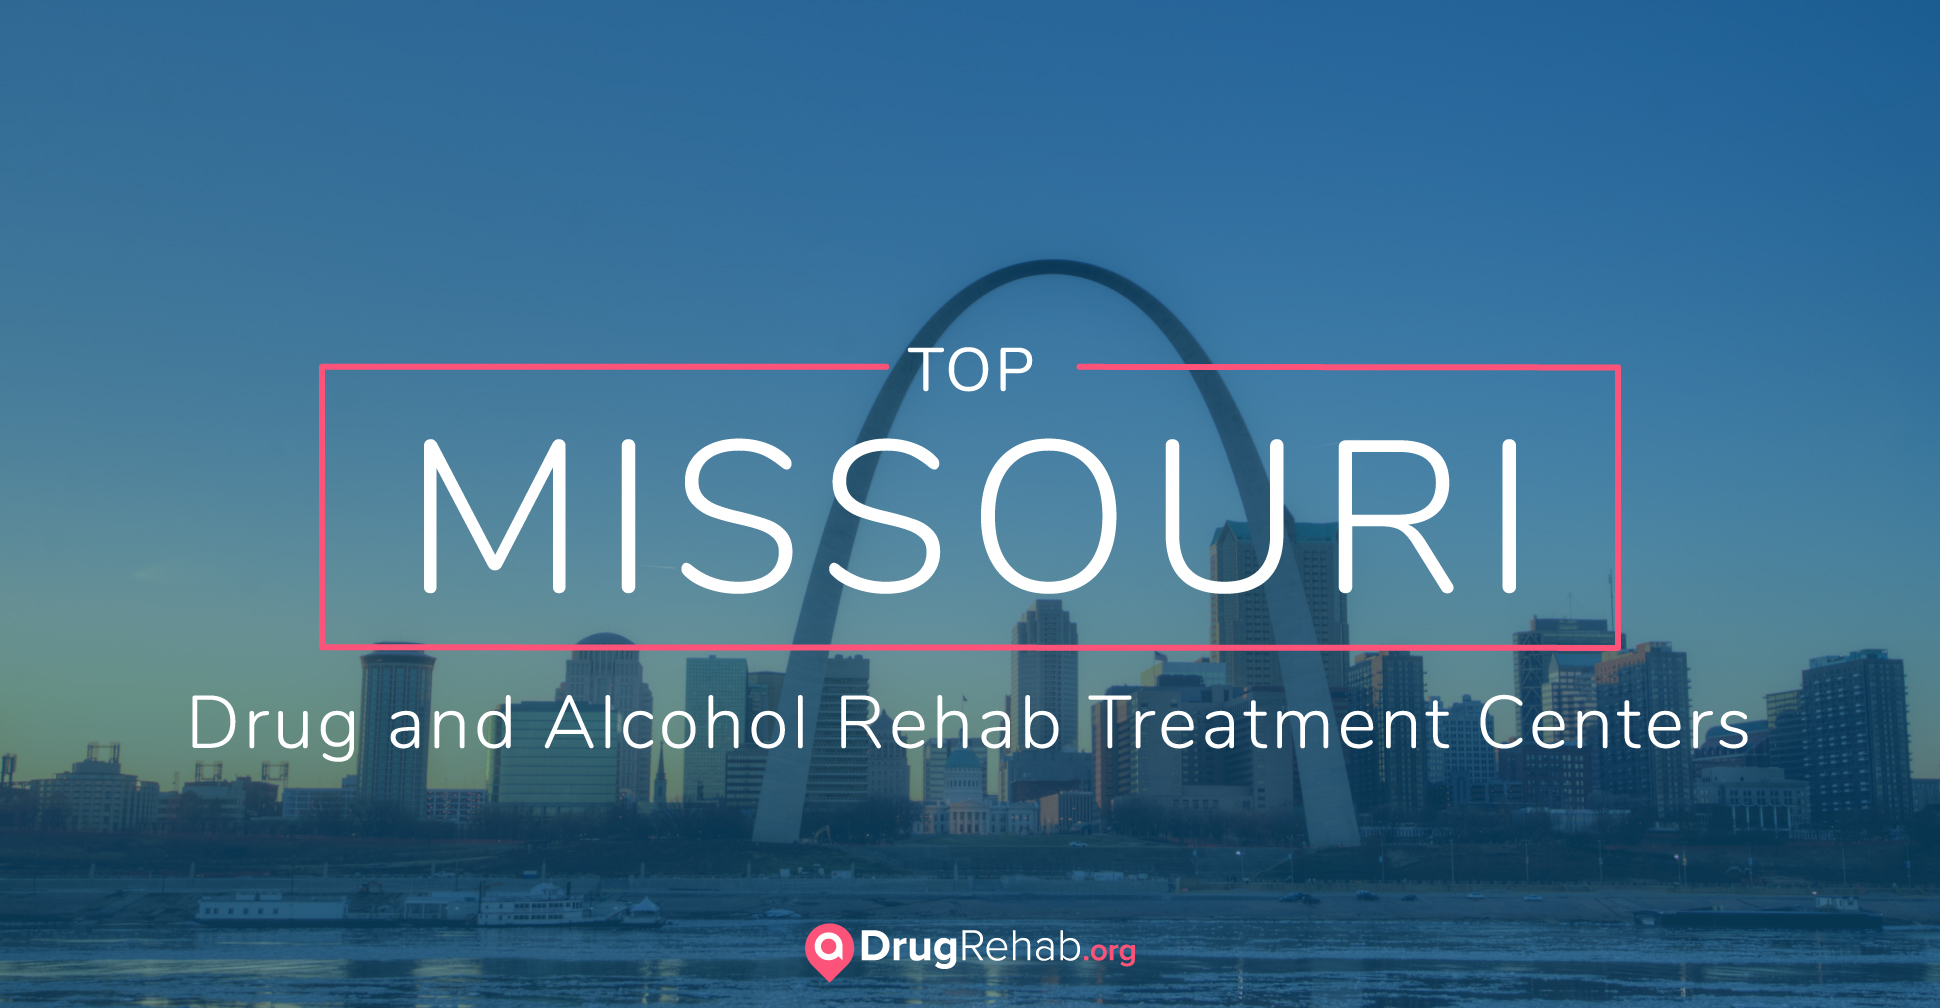 aDrugRehab.org Top Missouri Drug And Alcohol Rehab Centers, Rehabs in Missouri